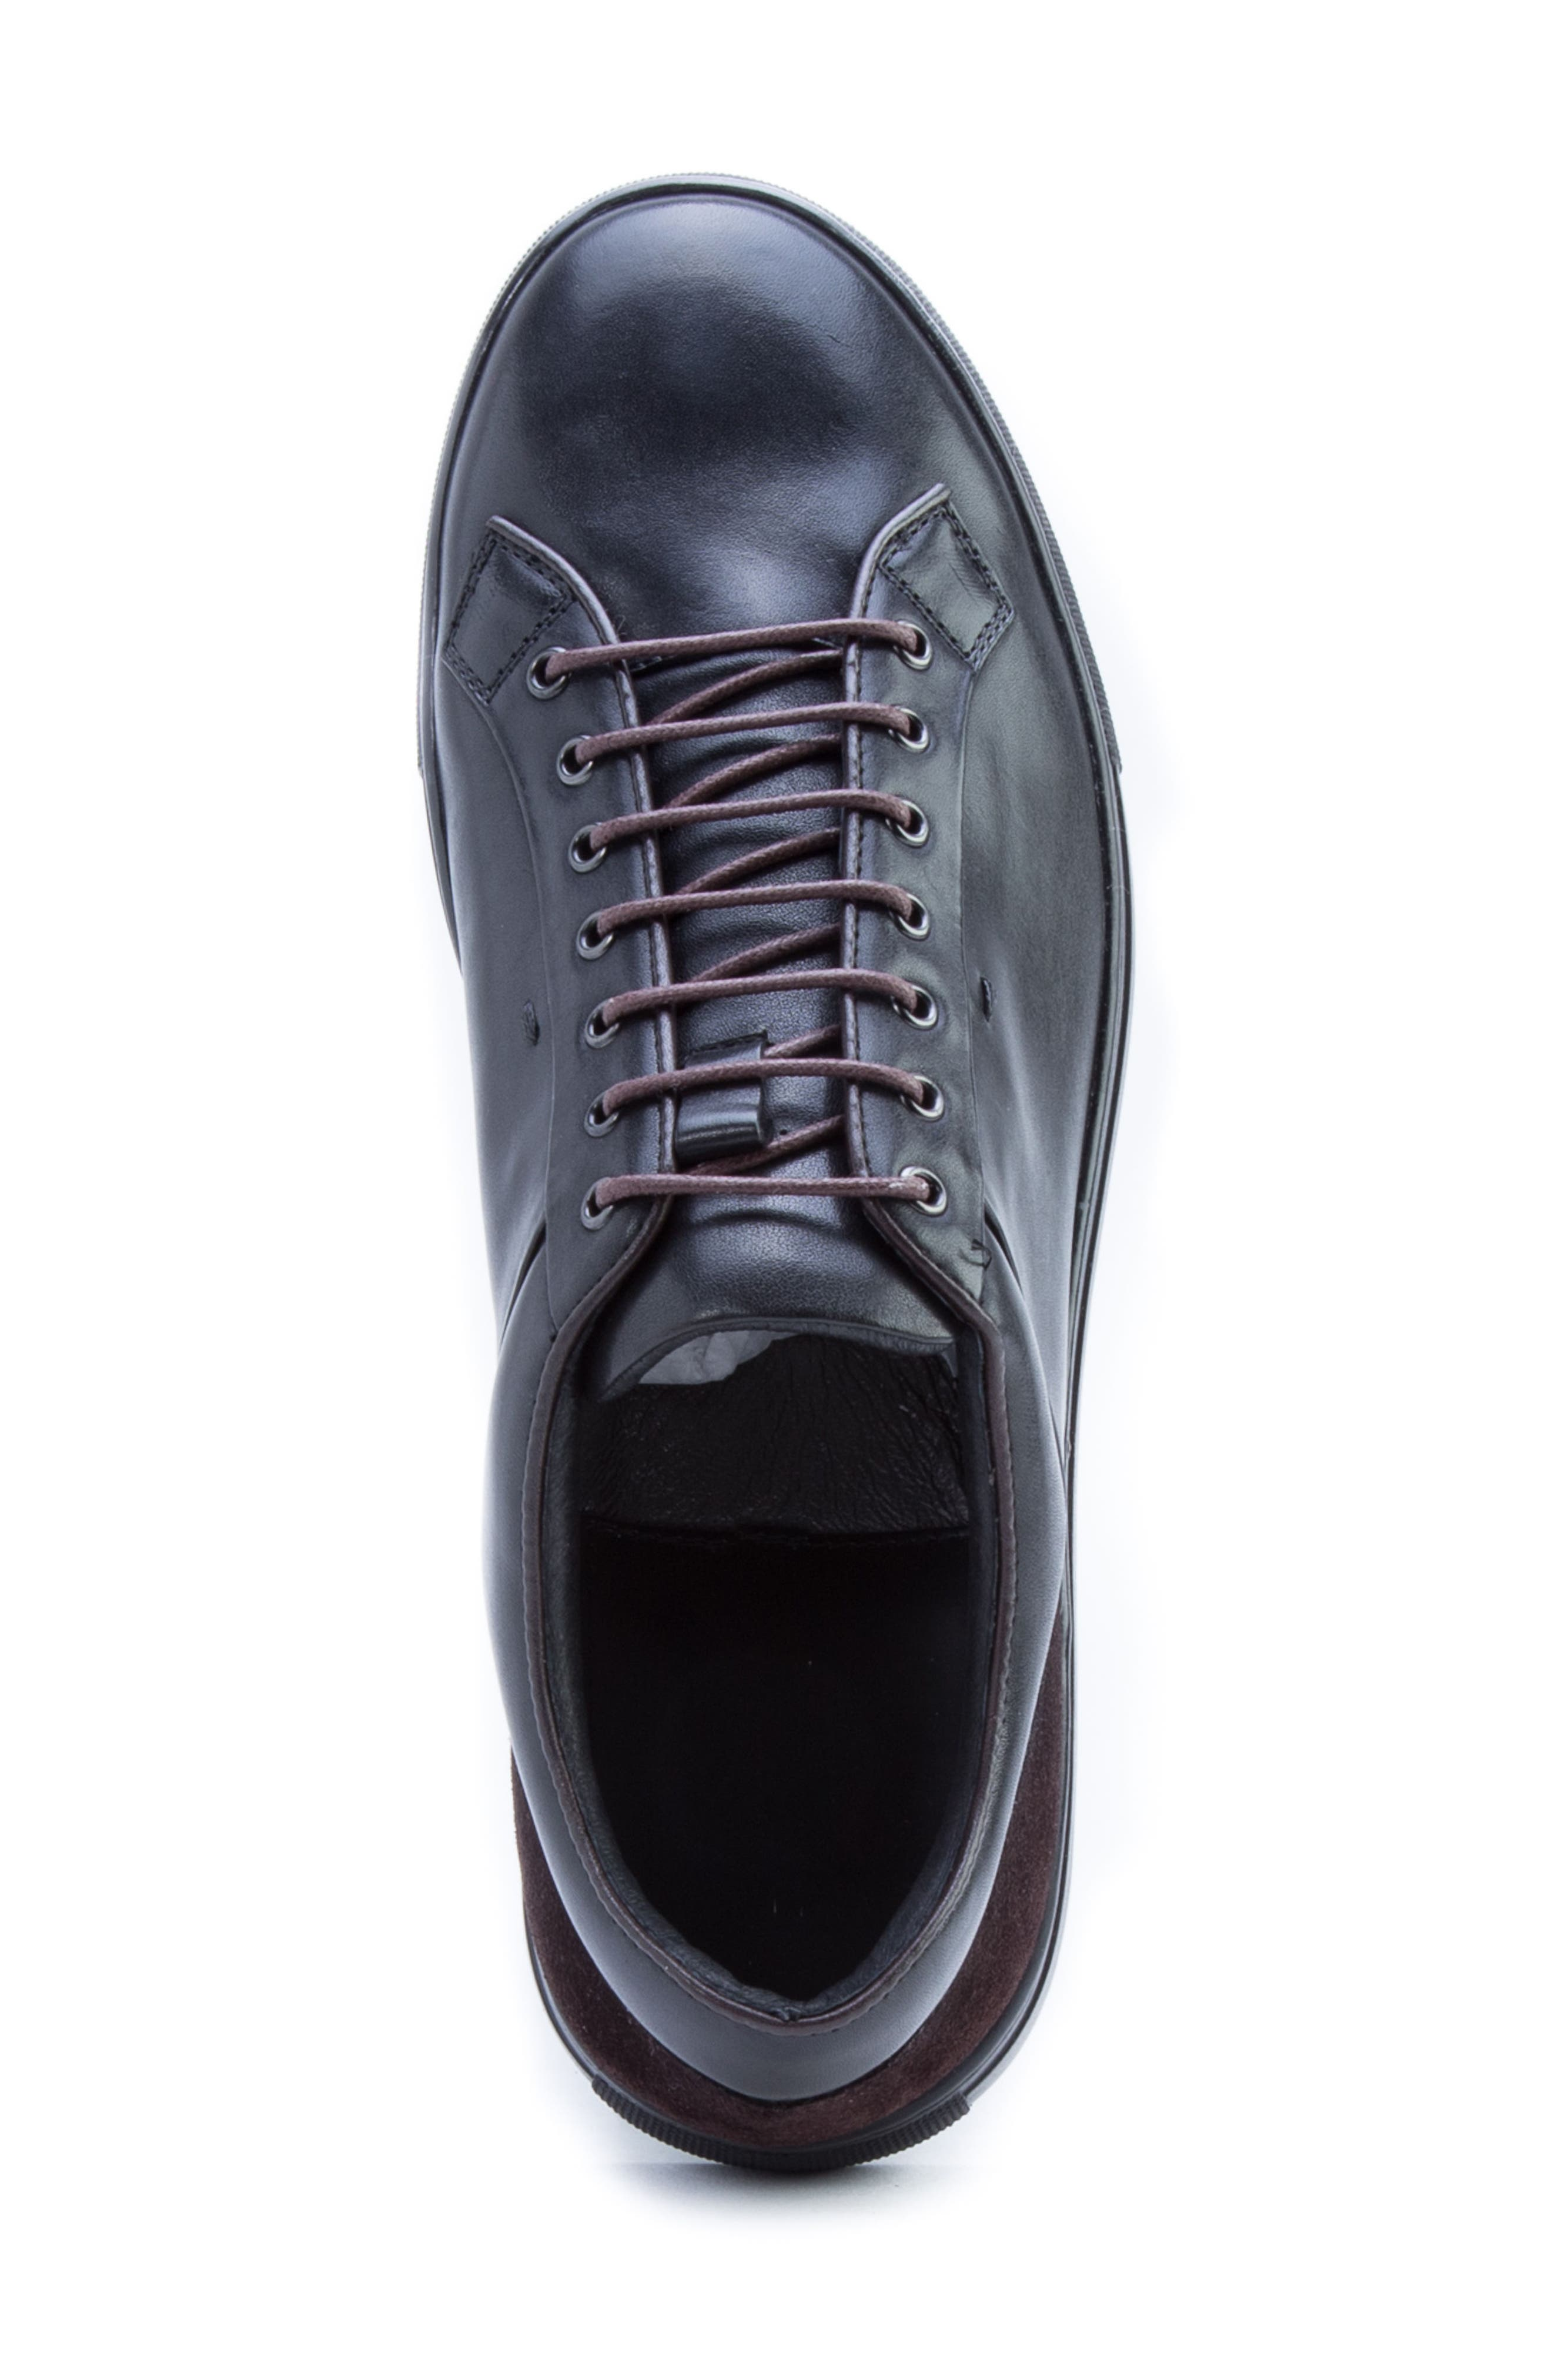 Pitch Low Top Sneaker,                             Alternate thumbnail 5, color,                             BLACK LEATHER/ SUEDE